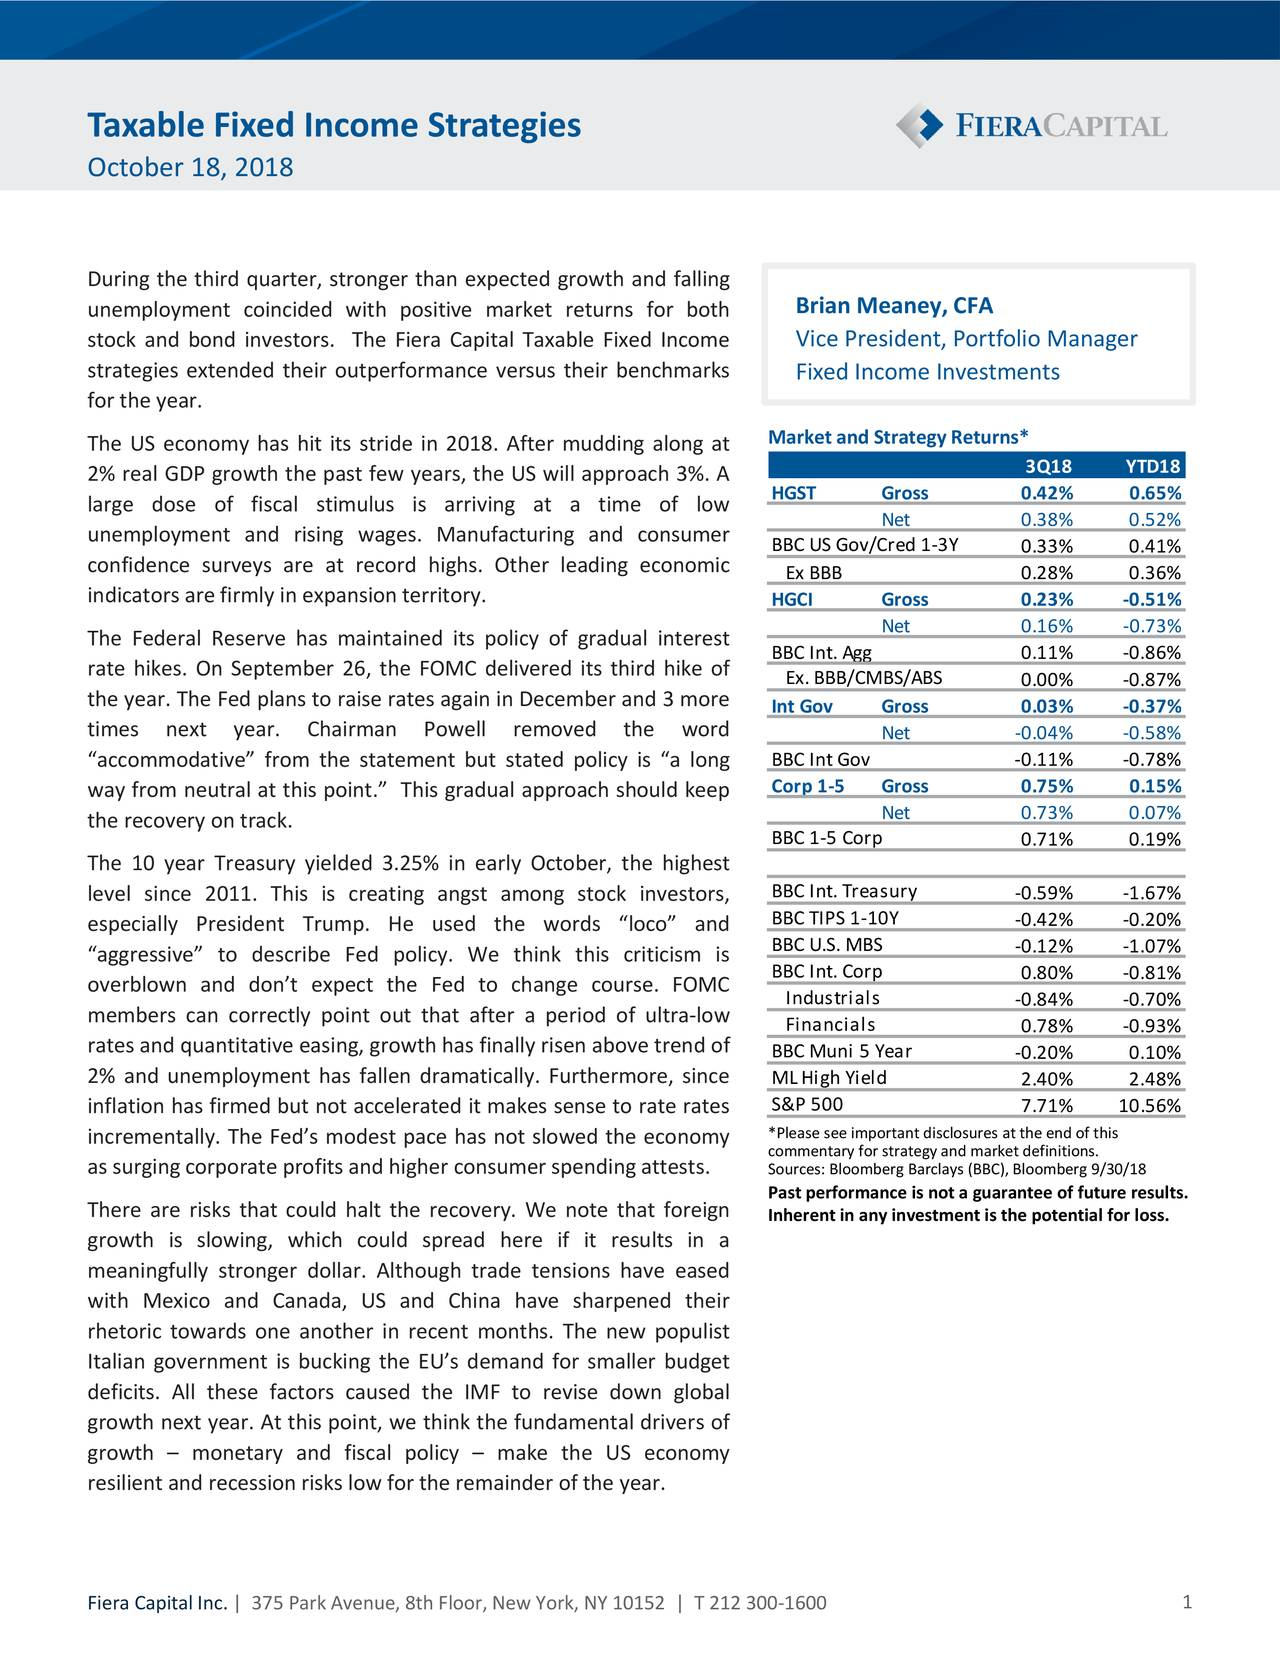 "October 18, 2018 During the third quarter, stronger than expected growth and falling unemployment coincided with positive market returns for both Brian Meaney, CFA stock and bond investors. The Fiera Capital Taxable Fixed Income Vice President, Portfolio Manager strategies extended their outperformance versus their benchmarks Fixed Income Investments for the year. Market and Strategy Returns* The US economy has hit its stride in 2018. After mudding along at 2% real GDP growth the past few years, the US will approach 3%. A 3Q18 YTD18 HGST Gross 0.42% 0.65% large dose of fiscal stimulus is arriving at a time of low Net 0.38% 0.52% unemployment and rising wages. Manufacturing and consumer BBC US Gov/Cred 1‐3Y 0.33% 0.41% confidence surveys are at record highs. Other leading economic Ex BBB 0.28% 0.36% indicators are firmly in expansion territory. HGCI Gross 0.23% ‐0.51% The Federal Reserve has maintained its policy of gradual interest Net 0.16% ‐0.73% BBC Int. Agg 0.11% ‐0.86% rate hikes. On September 26, the FOMC delivered its third hike of Ex. BBB/CMBS/ABS 0.00% ‐0.87% the year. The Fed plans to raise rates again in December and 3 more Int Gov Gross 0.03 % ‐0.37% times next year. Chairman Powell removed the word Net ‐0.04% ‐0.58% ""accommodative"" from the statement but stated policy is ""a long BBC Int Gov ‐0.11% ‐0.78% way from neutral at this point."" This gradual approach should keep Corp 1‐5 Gross 0.75% 0.15% the recovery on track. Net 0.73% 0.07% BBC 1‐5 Corp 0.71% 0.19% The 10 year Treasury yielded 3.25% in early October, the highest level since 2011. This is creating angst among stock investors, BBC Int. Treasury ‐0.59% ‐1.67% BBC TIPS 1‐10Y ‐0.42% ‐0.20% especially President Trump. He used the words ""loco"" and ""aggressive"" to describe Fed policy. We think this criticism is BBC U.S. MBS ‐0.12% ‐1.07% BBC Int. Corp 0.80% ‐0.81% overblown and don't expect the Fed to change course. FOMC Industrials ‐0.84% ‐0.70% members can correctly point out that after a period of ultra‐low Financials 0.78% ‐0.93% rates and quantitative easing, growth has finally risen above trend of BBC Muni 5 Year ‐0.20% 0.10% 2% and unemployment has fallen dramatically. Furthermore, since ML High Yield 2.40% 2.48% inflation has firmed but not accelerated it makes sense to rate rates S&P 500 7.71% 10.56% incrementally. The Fed's modest pace has not slowed the economy *Please see important disclosures at the end of this commentary for strategy and market definitions. as surging corporate profits and higher consumer spending attests. Sources: Bloomberg Barclays (BBC), Bloomberg 9/30/18 Past performance is not a guarantee of future results. There are risks that could halt the recovery. We note that foreign Inherent in any investment is the potential for loss. growth is slowing, which could spread here if it results in a .meaningfully stronger dollar. Although trade tensions have eased with Mexico and Canada, US and China have sharpened their rhetoric towards one another in recent months. The new populist Italian government is bucking the EU's demand for smaller budget deficits. All these factors caused the IMF to revise down global growth next year. At this point, we think the fundamental drivers of growth – monetary and fiscal policy – make the US economy resilient and recession risks low for the remainder of the year. Fiera Capital Inc. 